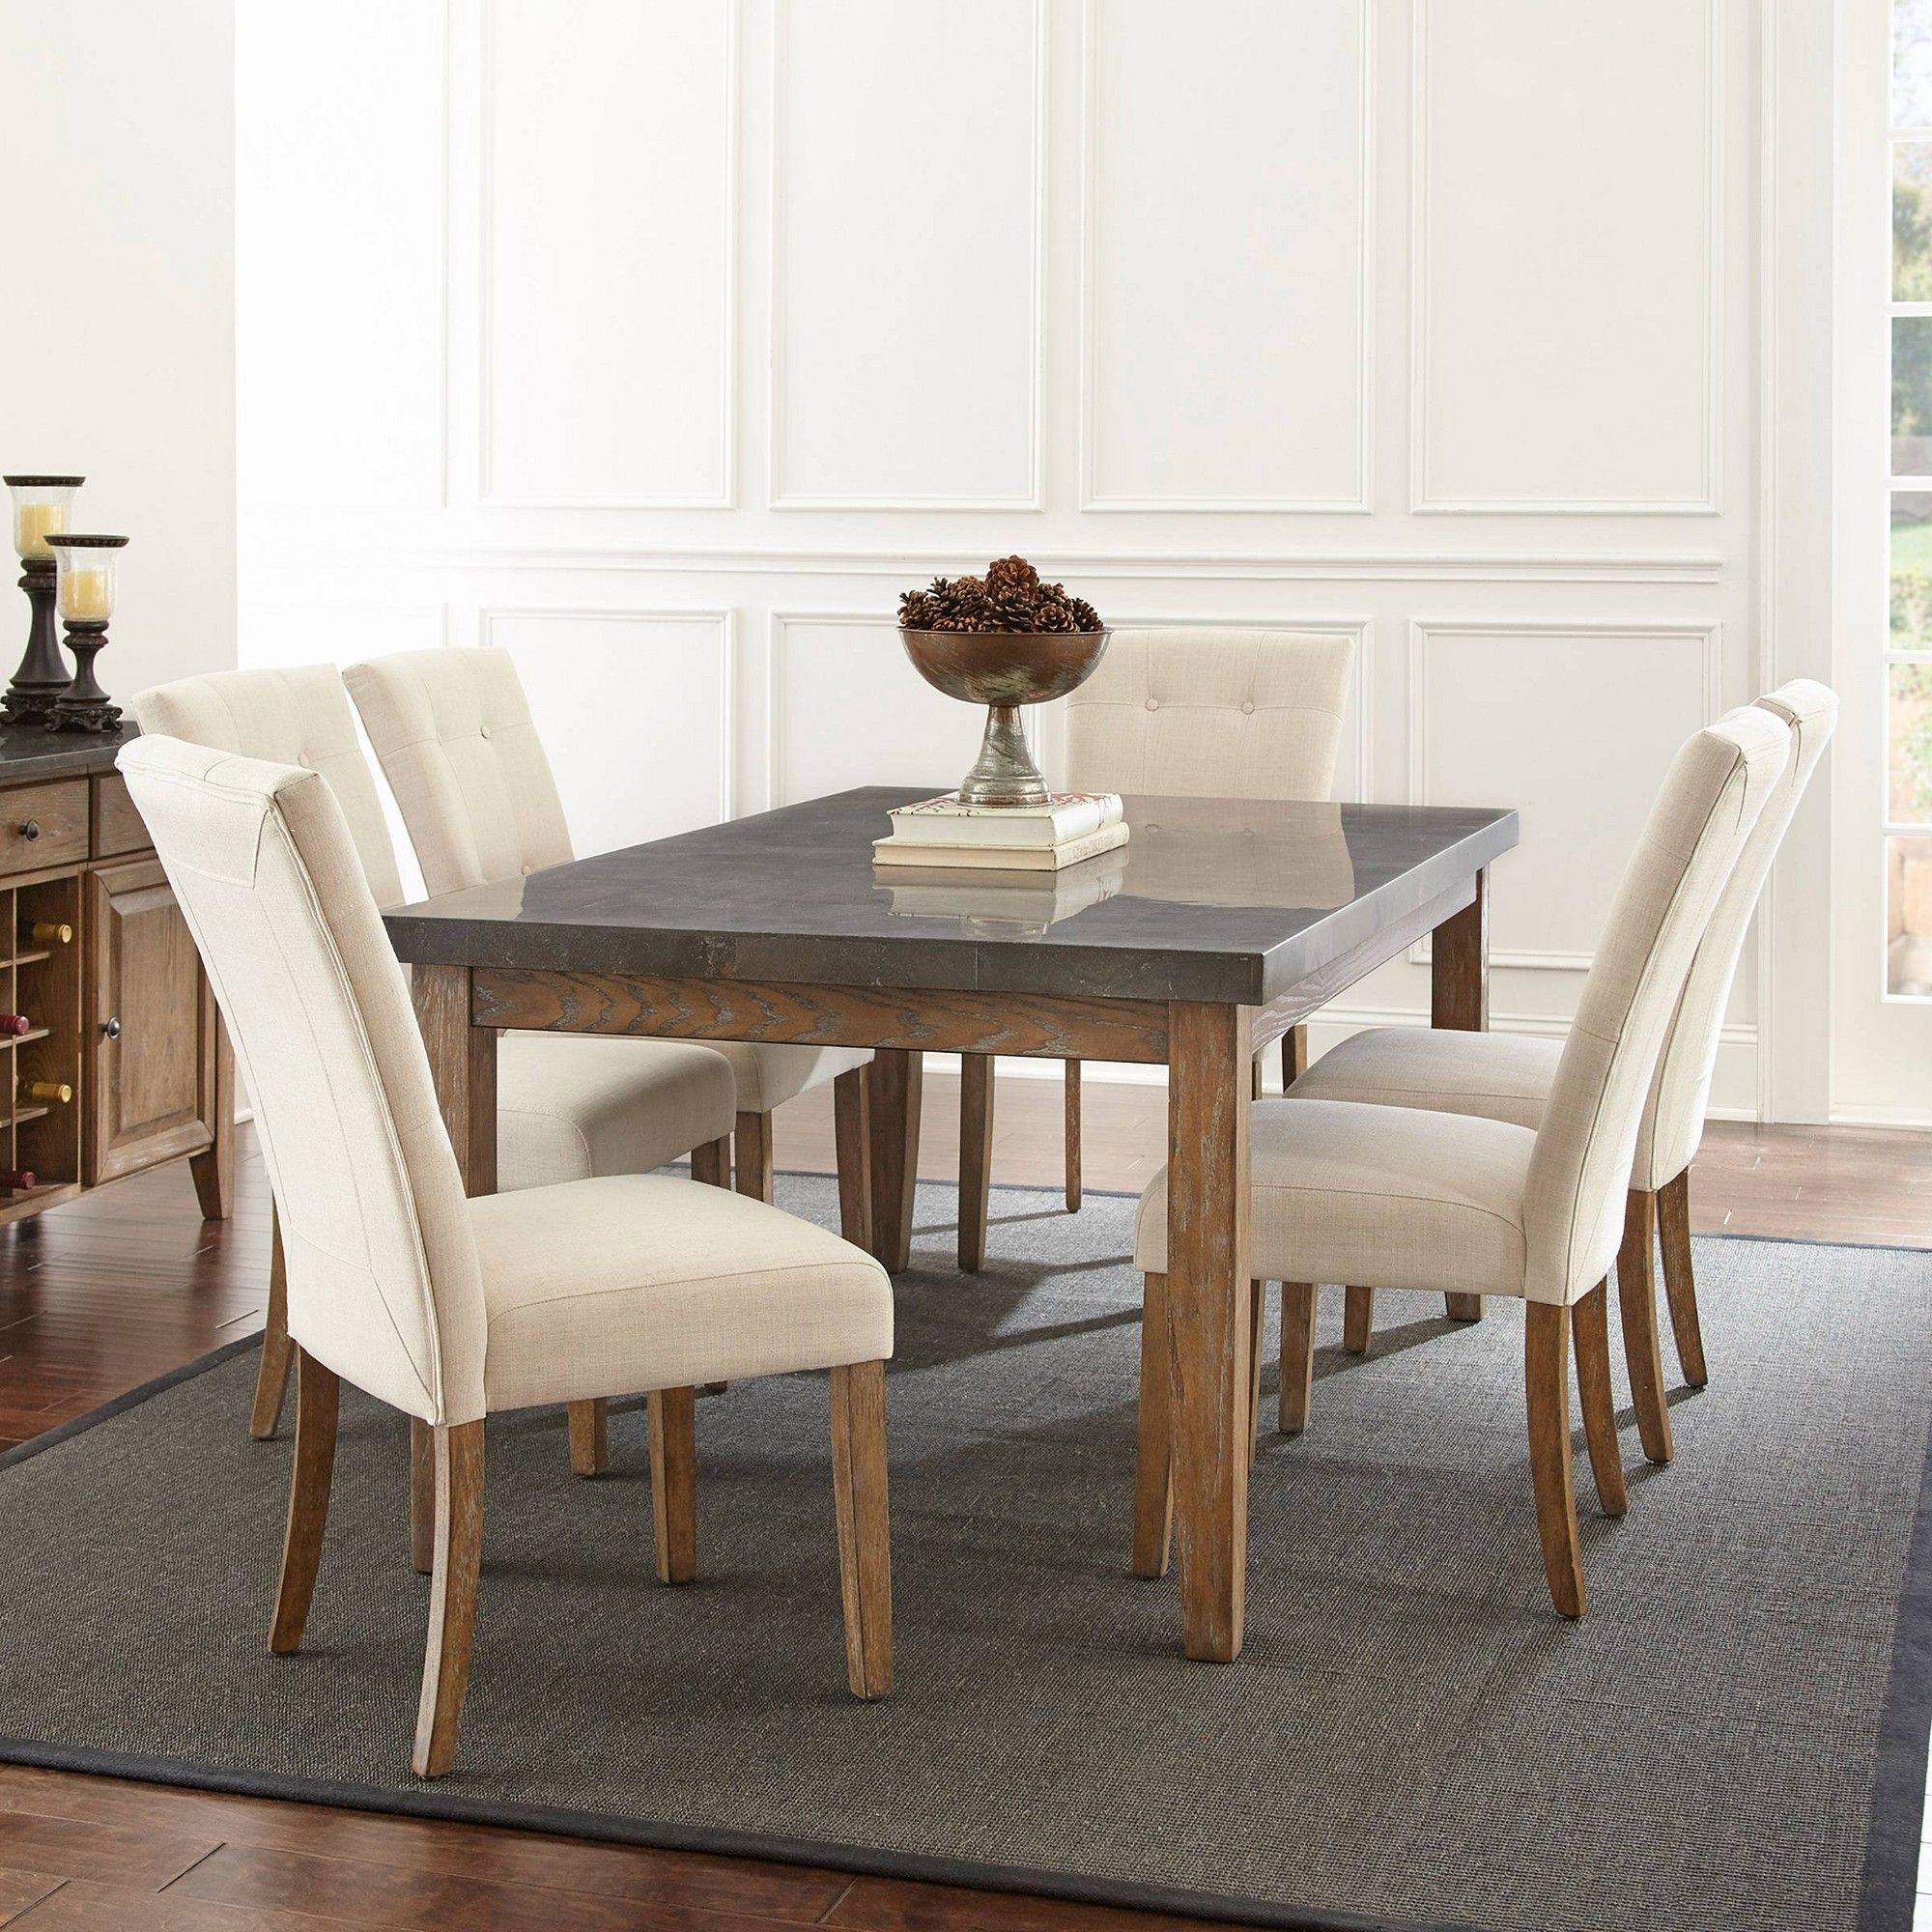 7pc Debby Dining Set Beige - Steve Silver | Products in 2019 ...